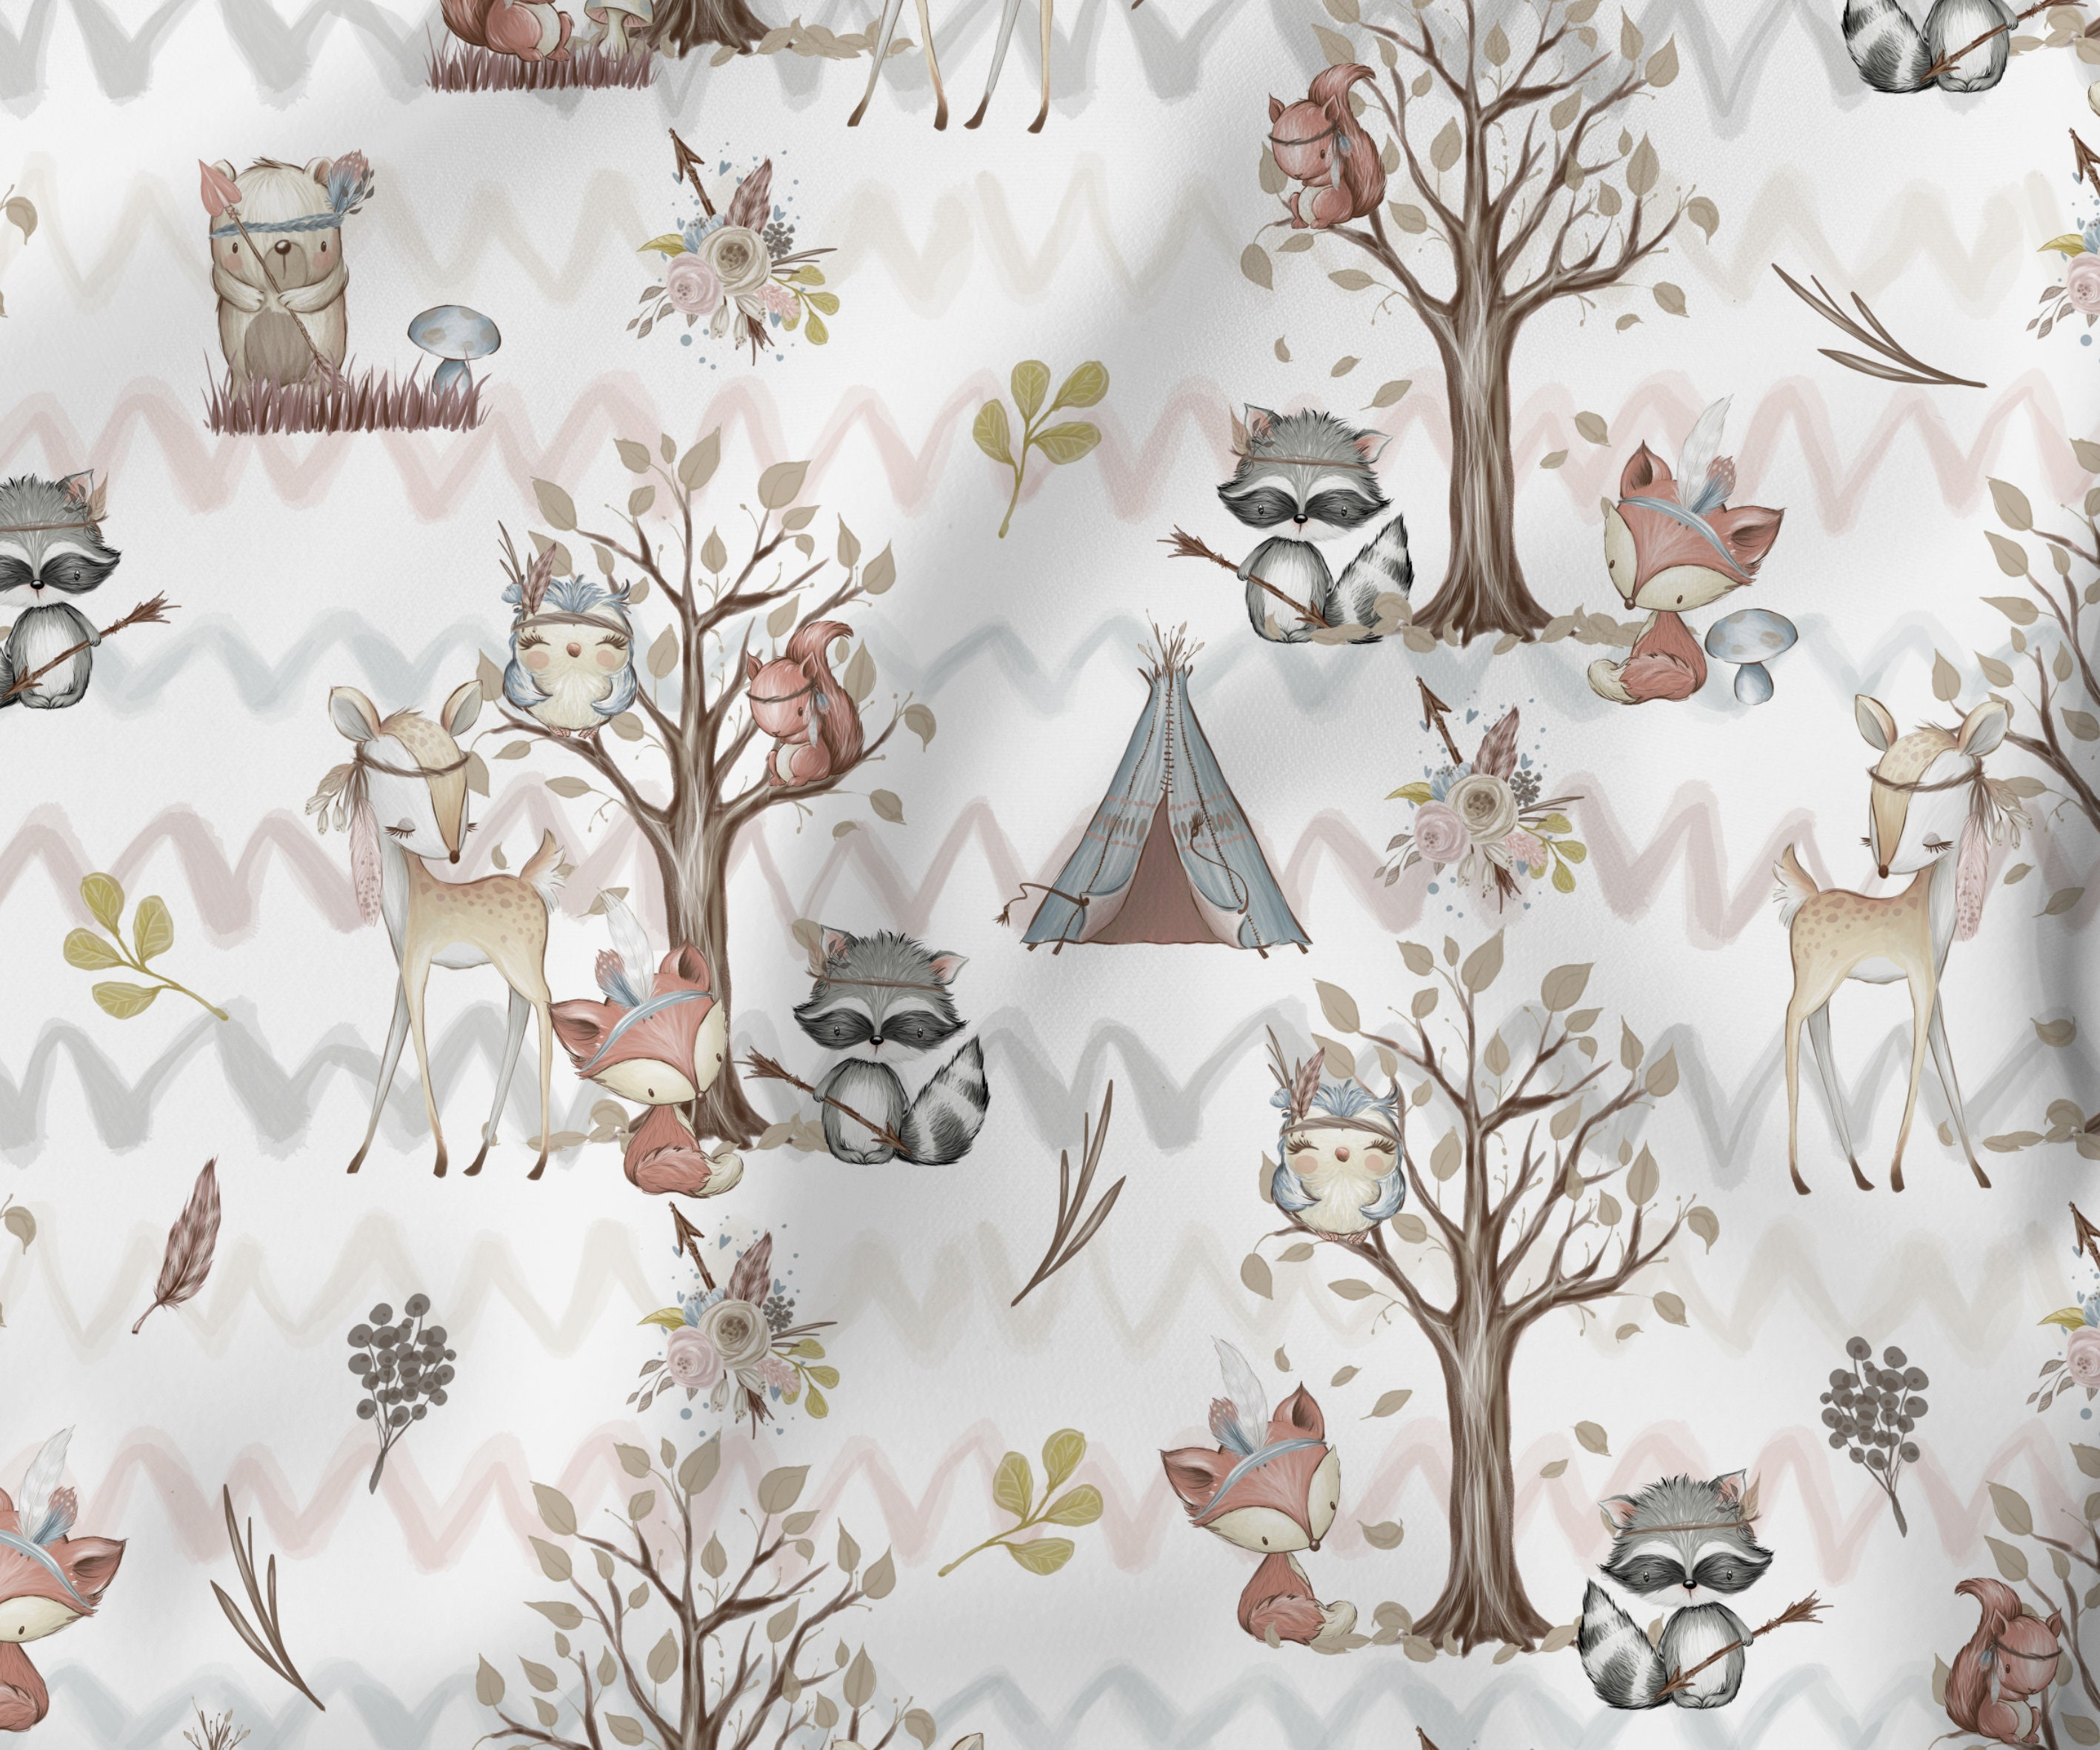 Cotton fabric cotton fabric children's fabric forest friends forest animals fox Bambi bunny raccoon